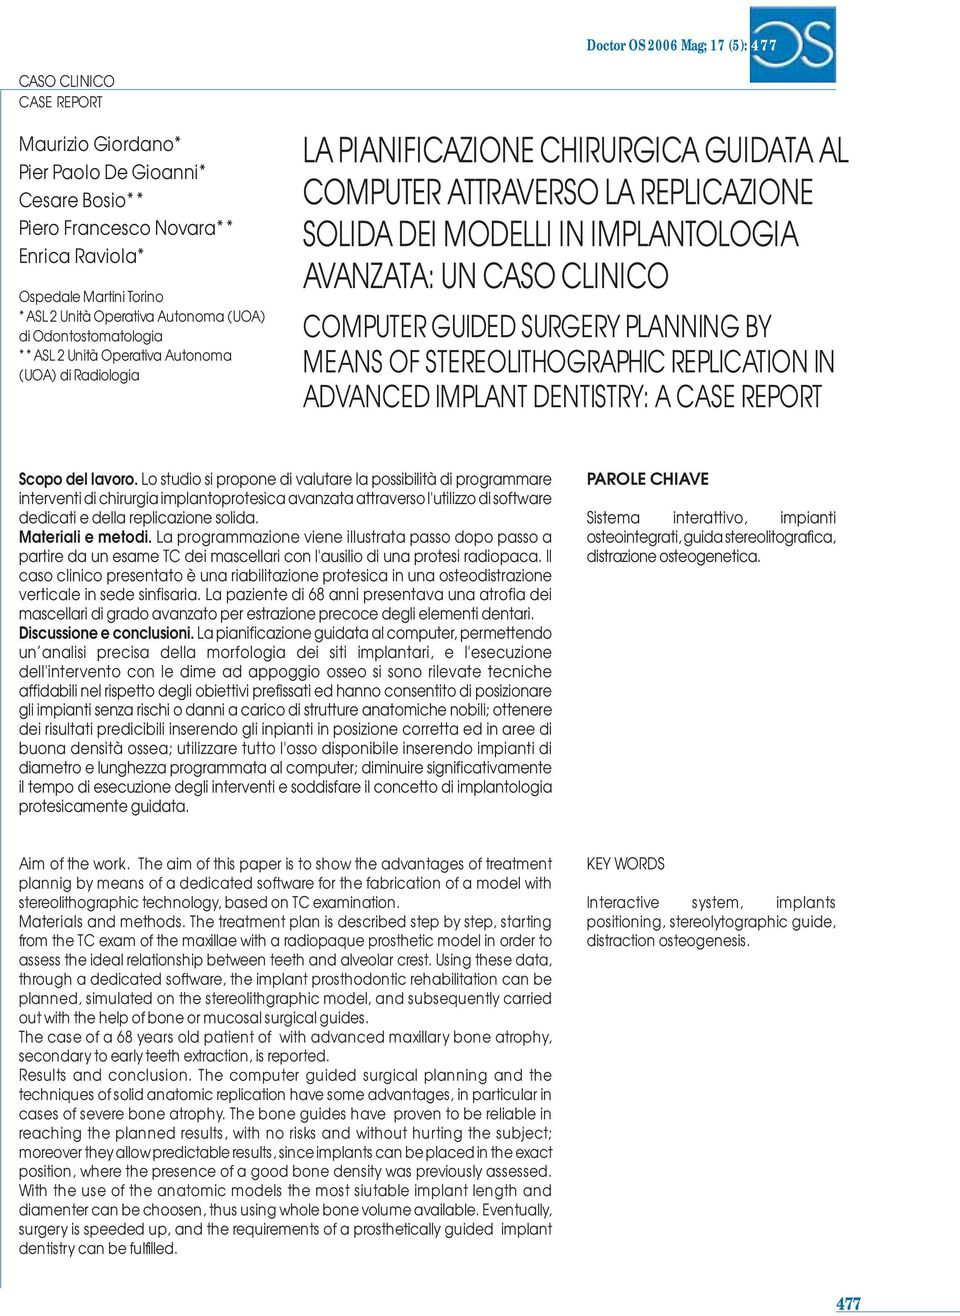 AVANZATA: UN COMPUTER GUIDED SURGERY PLANNING BY MEANS OF STEREOLITHOGRAPHIC REPLICATION IN ADVANCED IMPLANT DENTISTRY: A CASE REPORT Scopo del lavoro.